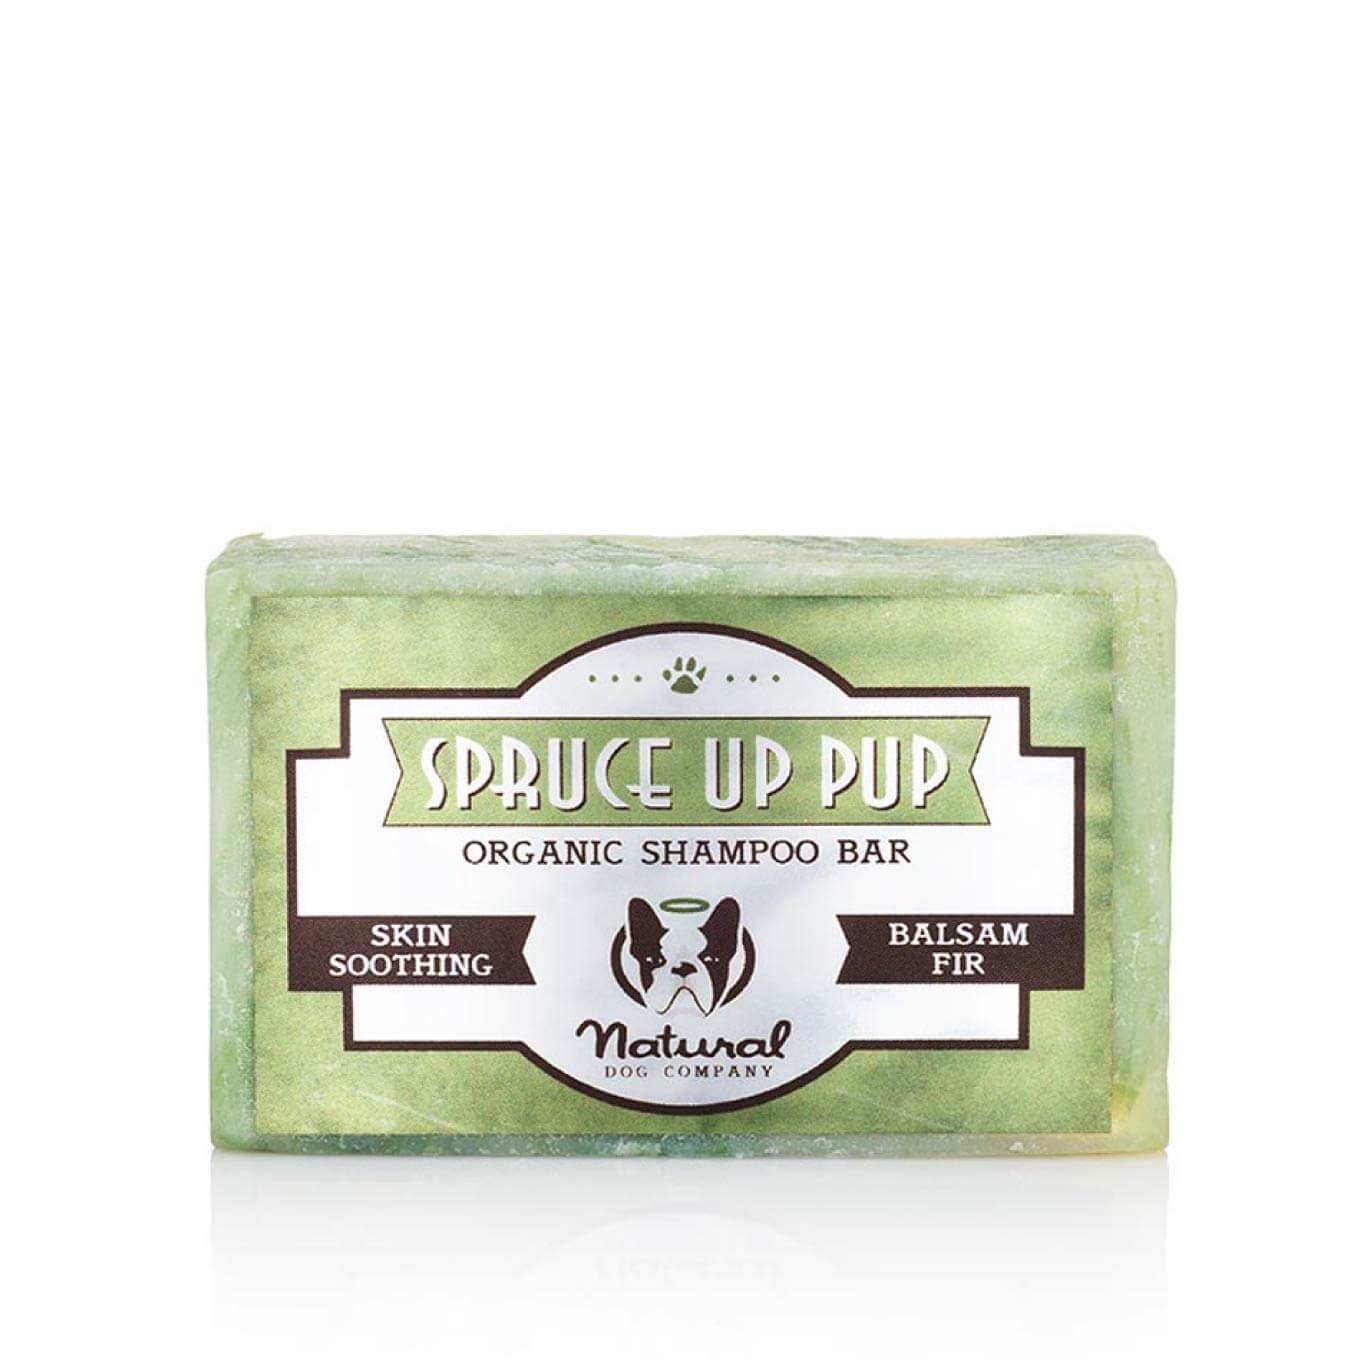 Natural Dog Company Spruce Up Pup Shampoo Bar - Beach, Dogs, Grooming Essentials, Hot Spots, Latte, Natural Dog Company, Paw Licking, Skin - Vanillapup - Online Pet Shop